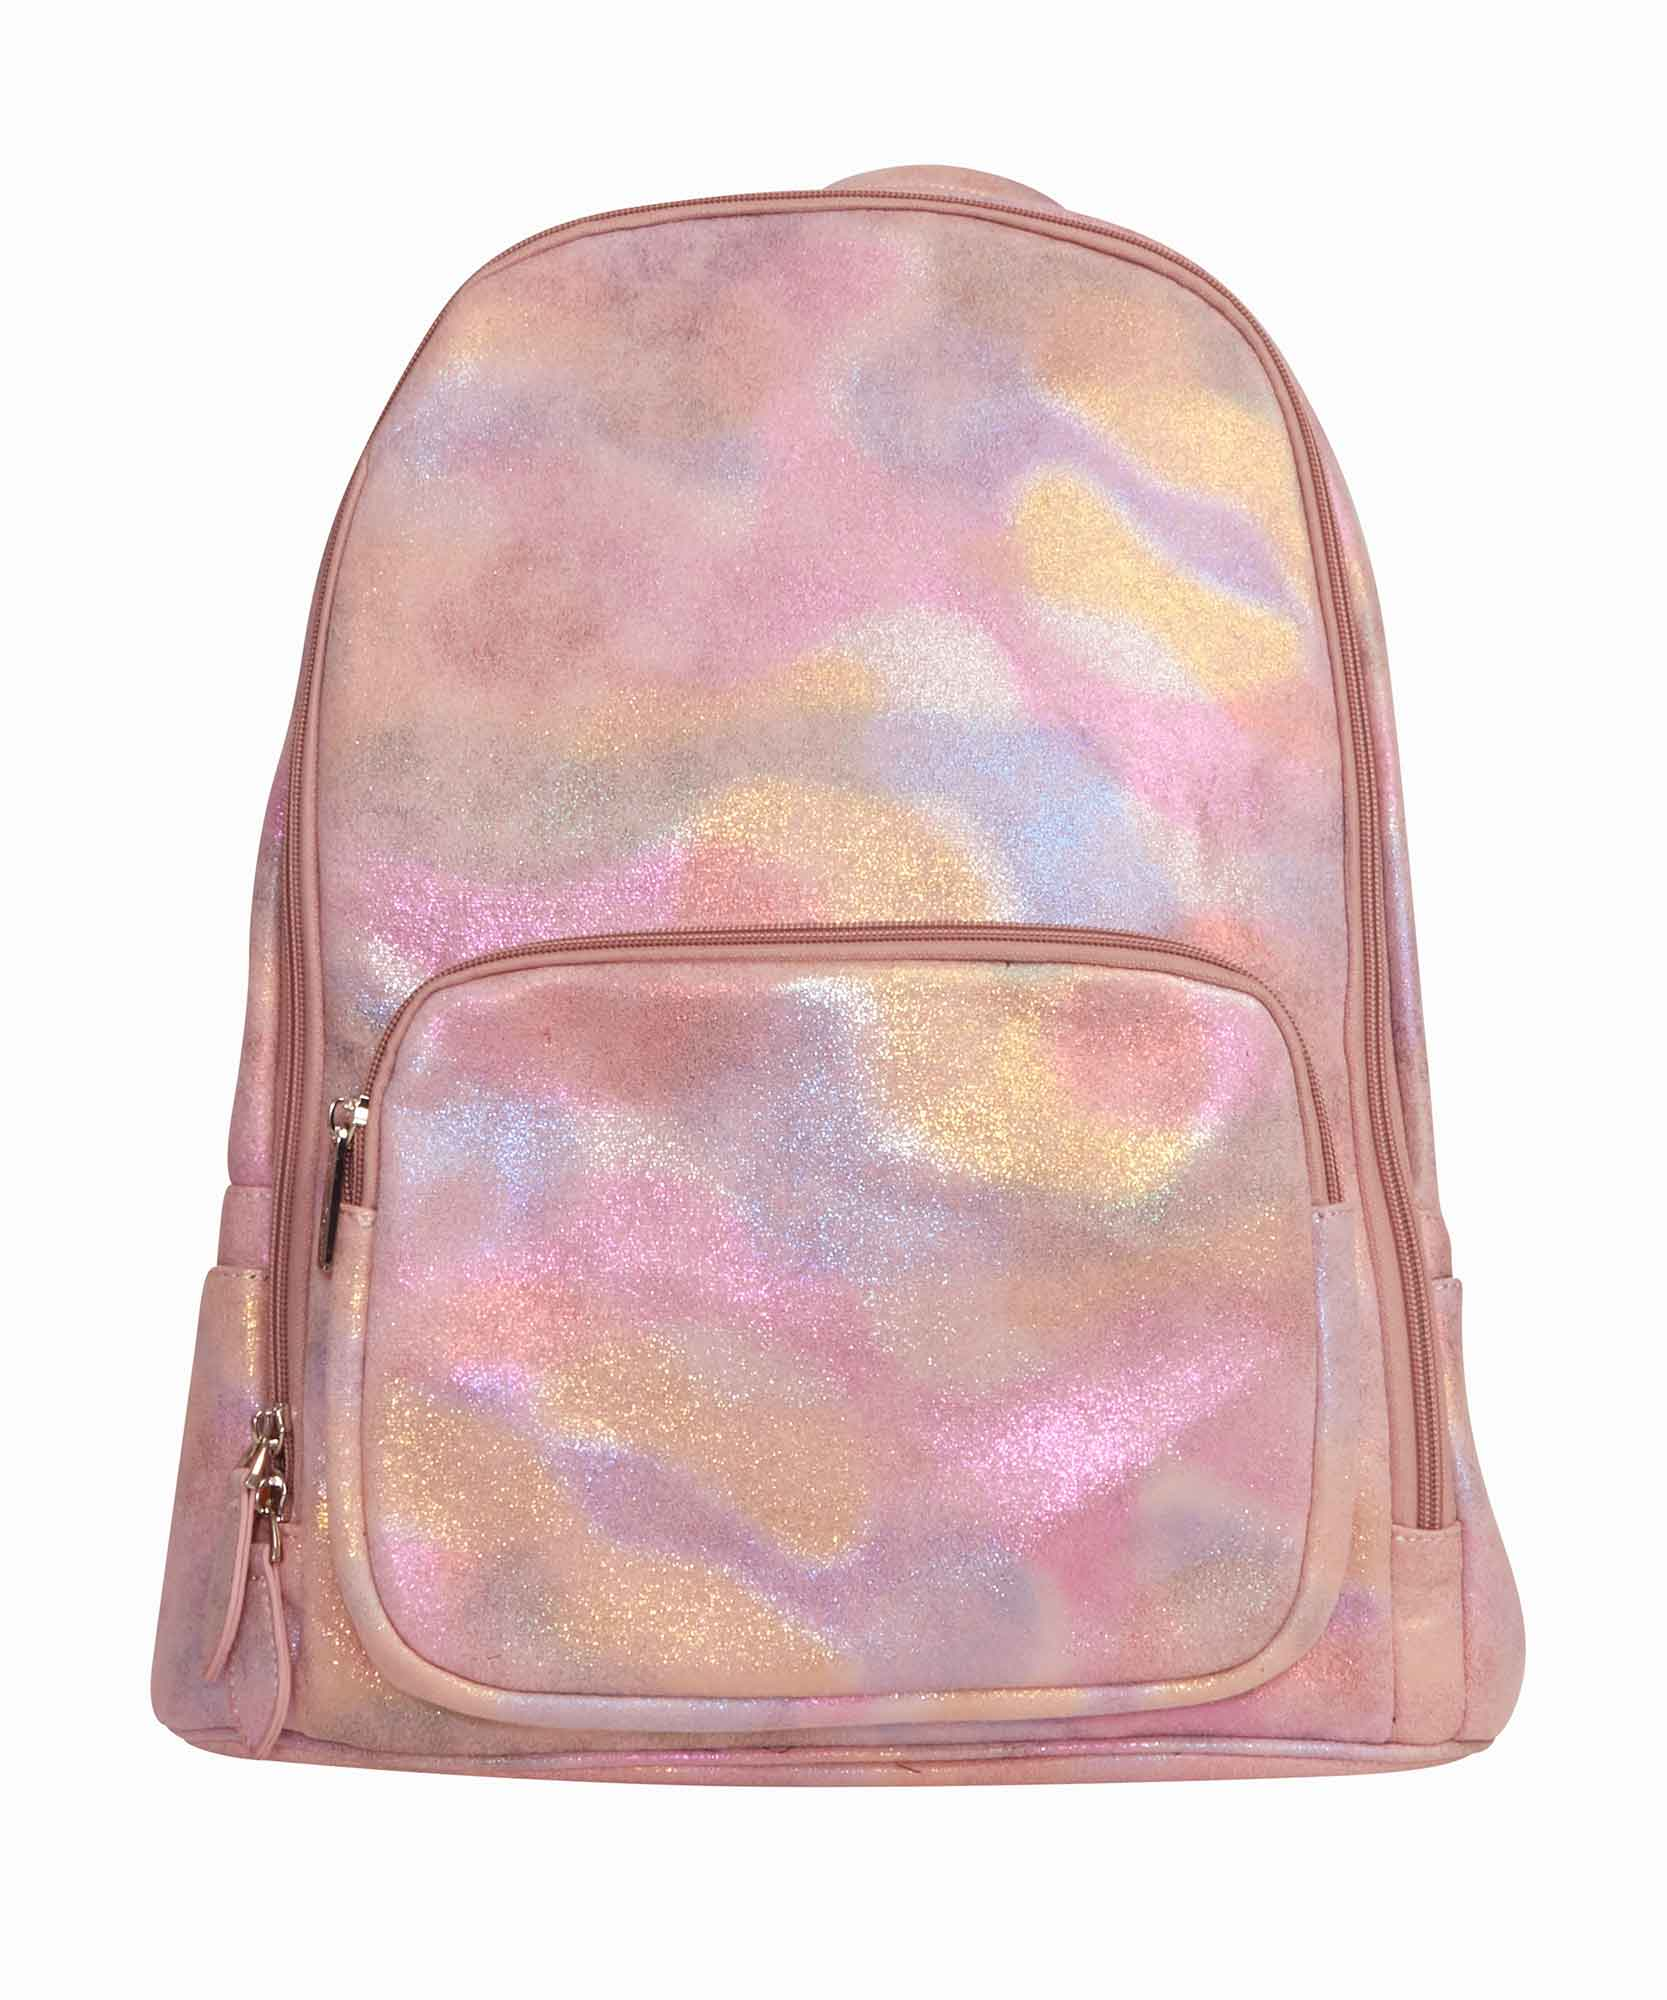 Bari Lynn Iridescent Pink Backpack